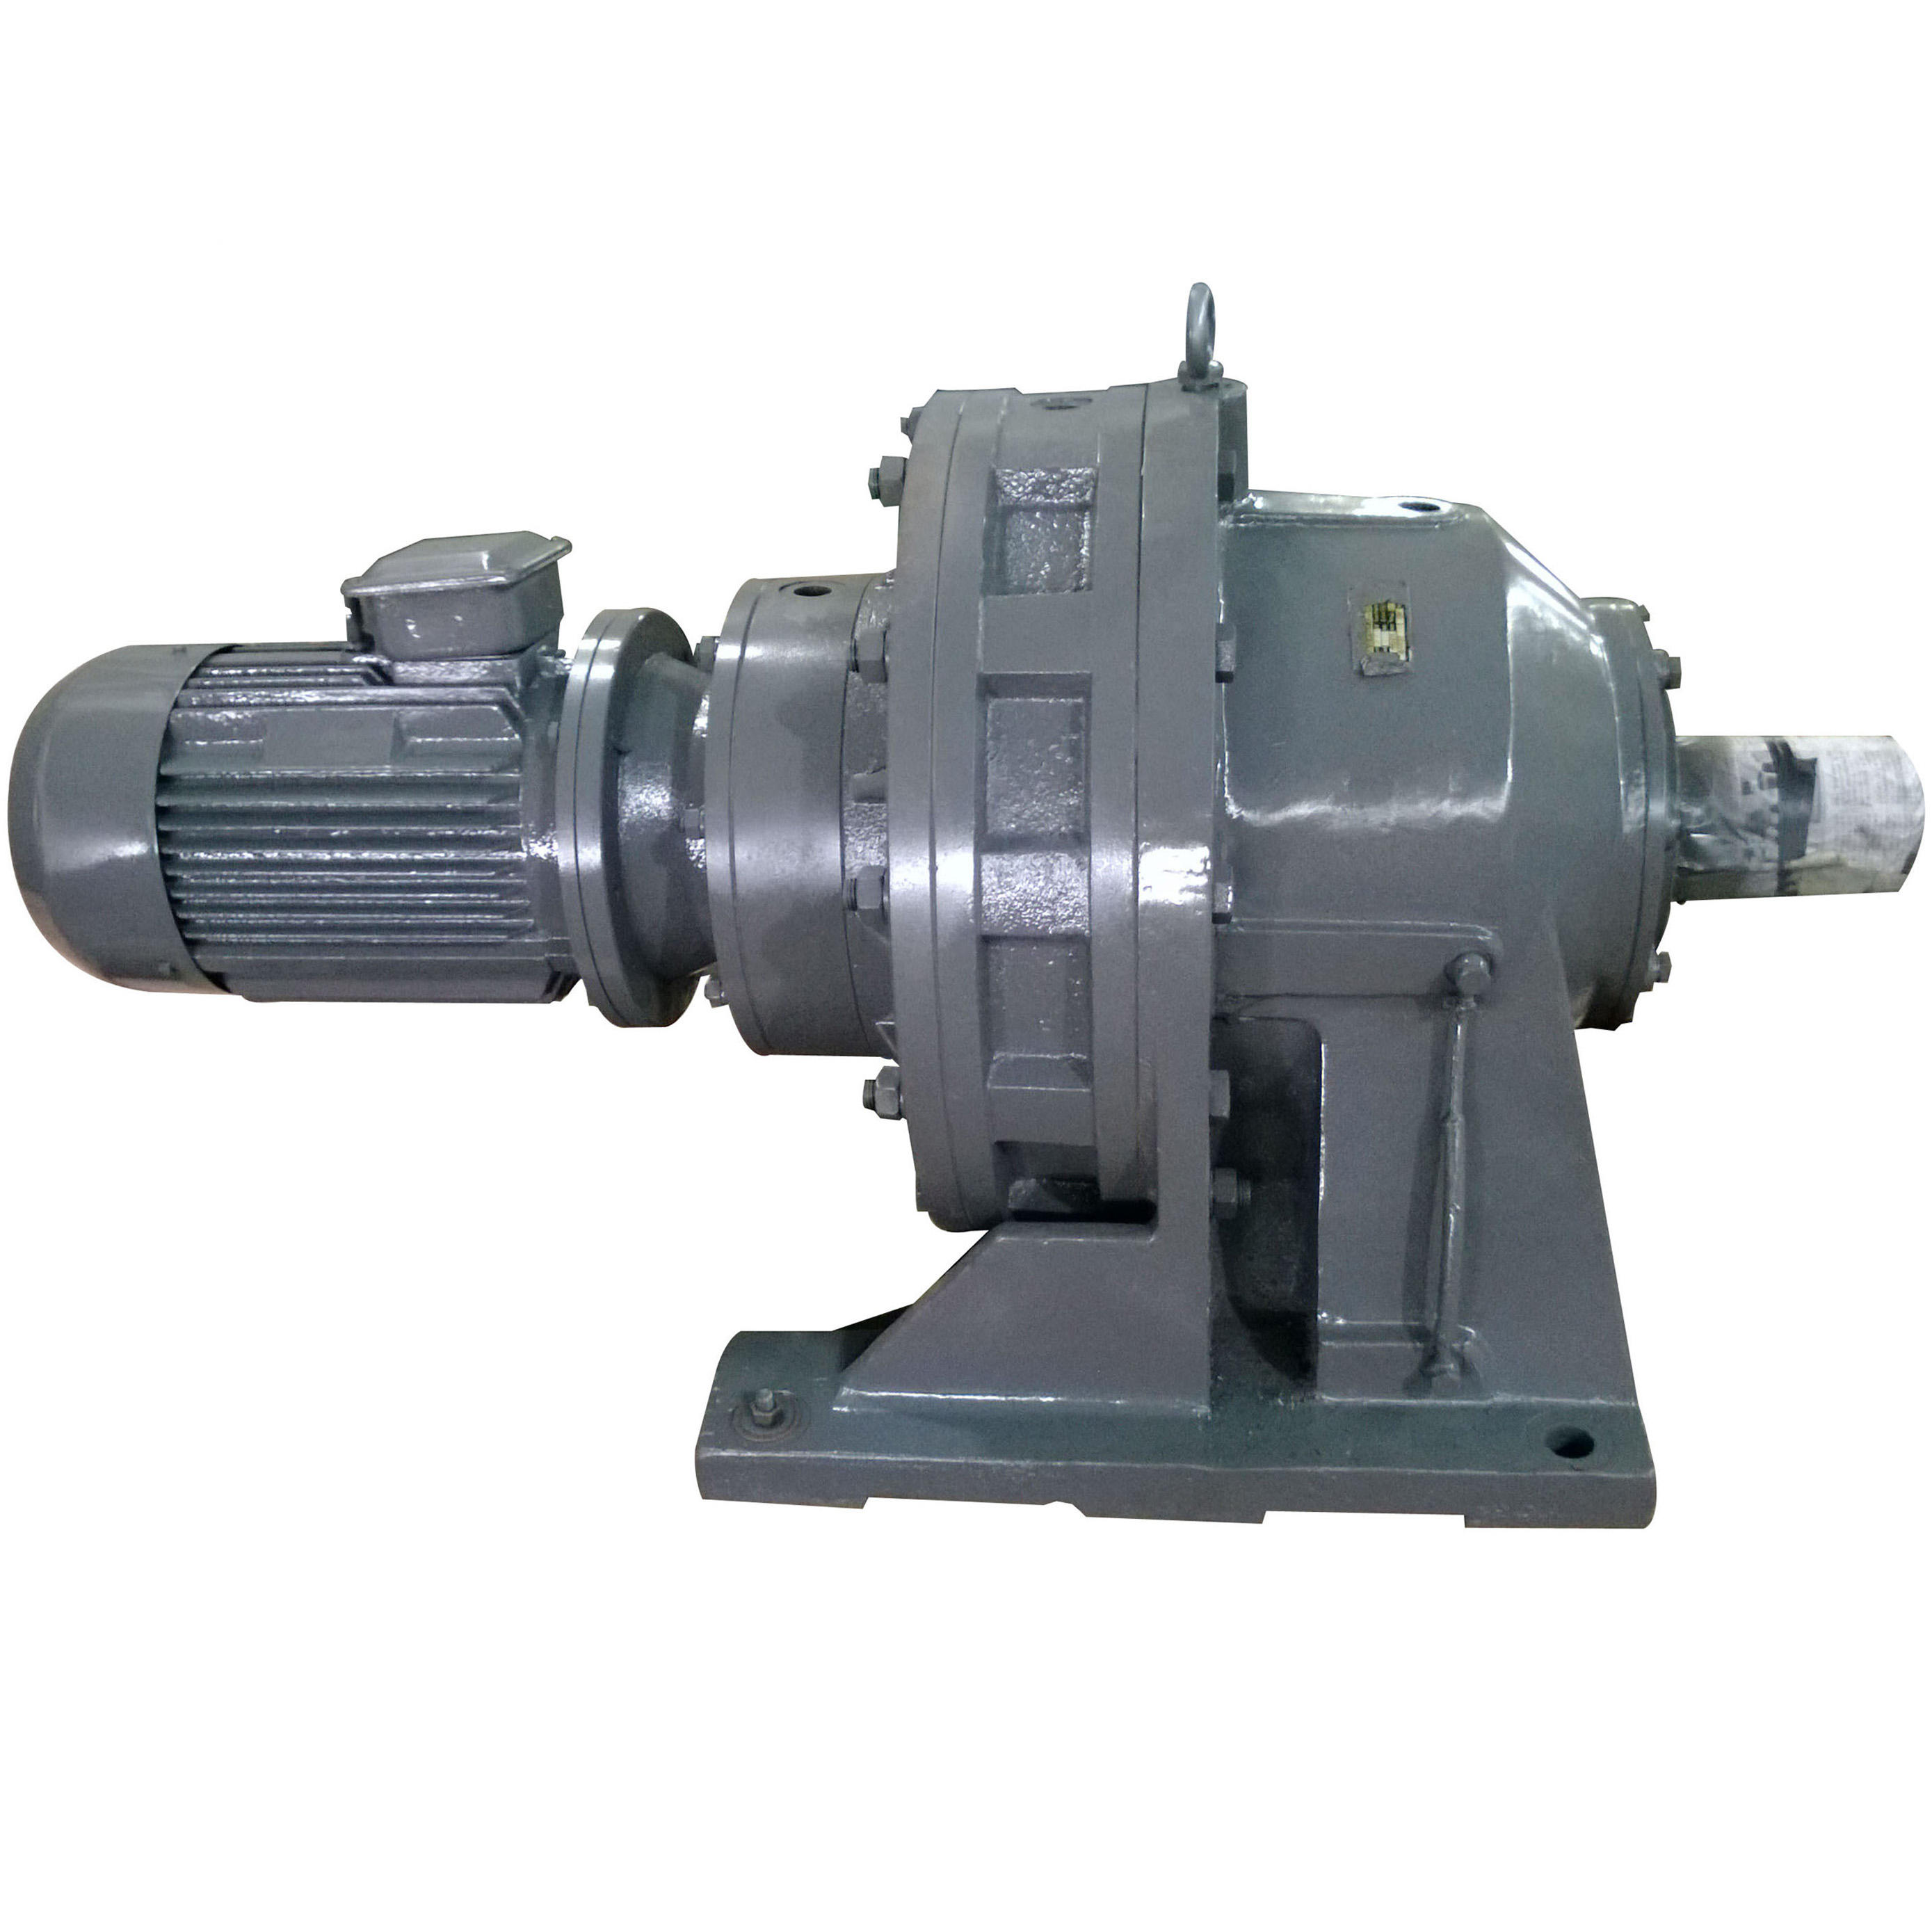 cycloidal deive dc gear motor 12v micro warm gear motor vertical gear motor gearbox reduction gearbox industrial small